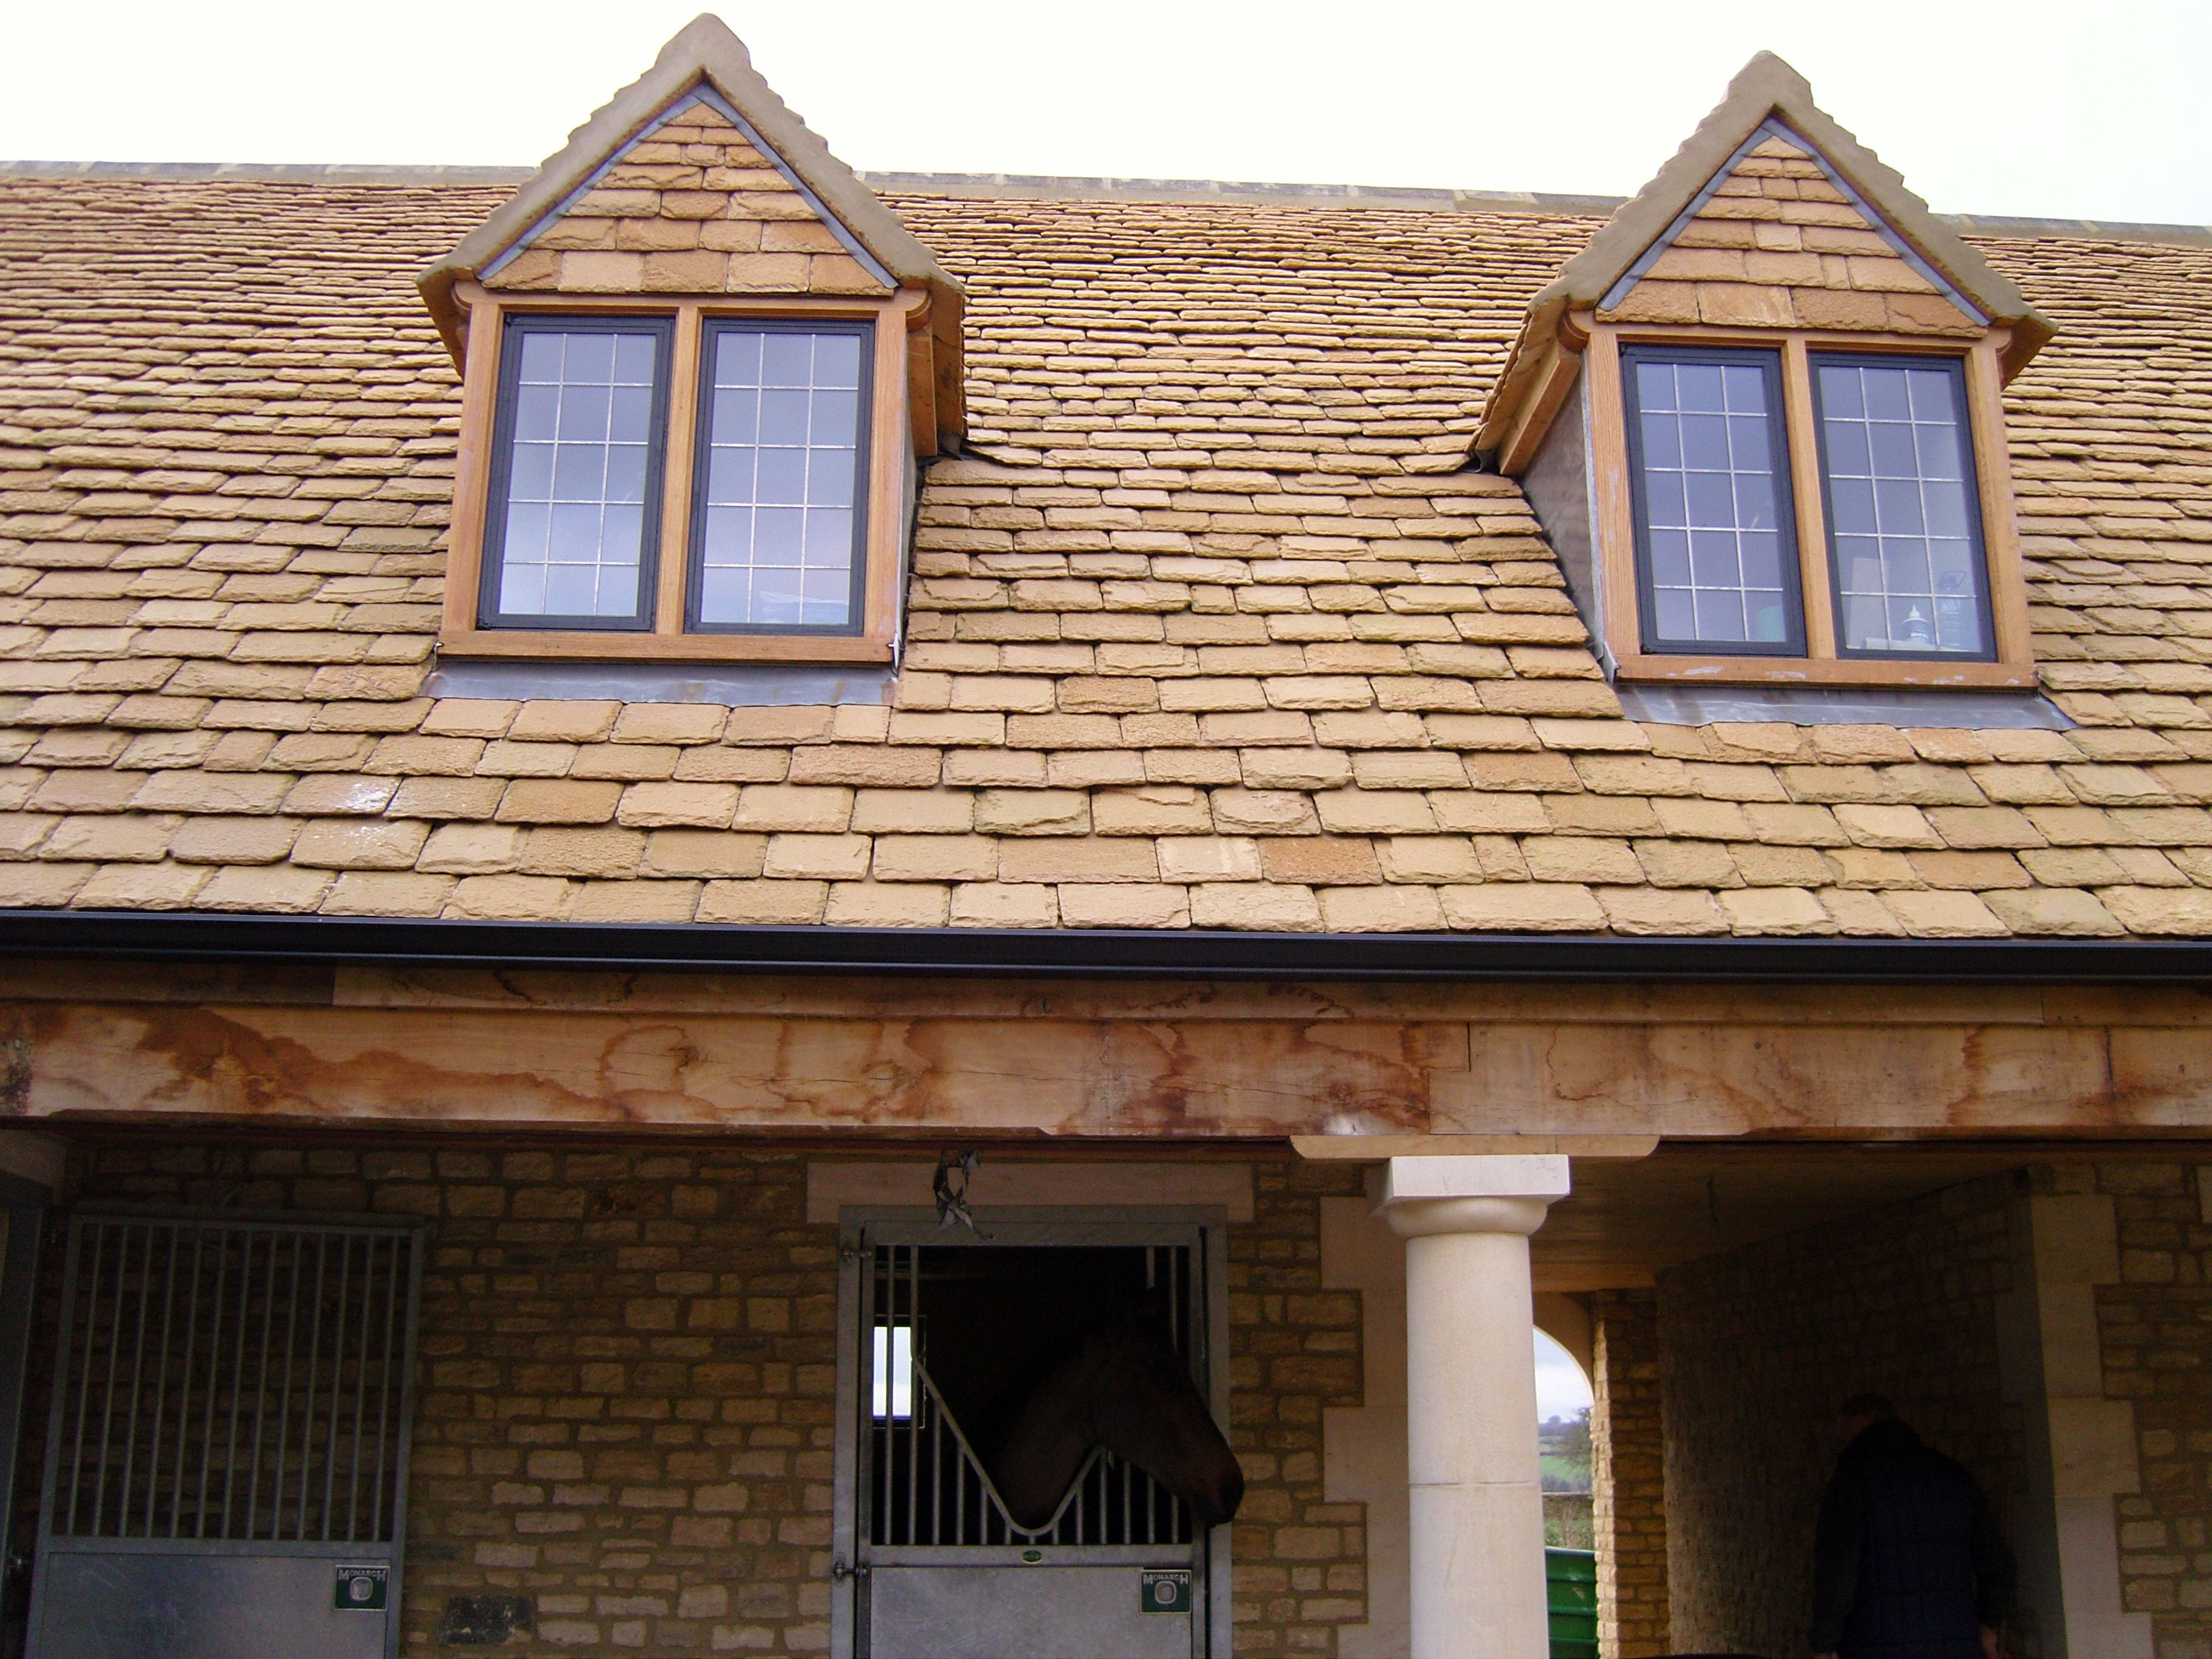 Cotswold Stone Slates Natural Roofing Supplies Roofing House Styles